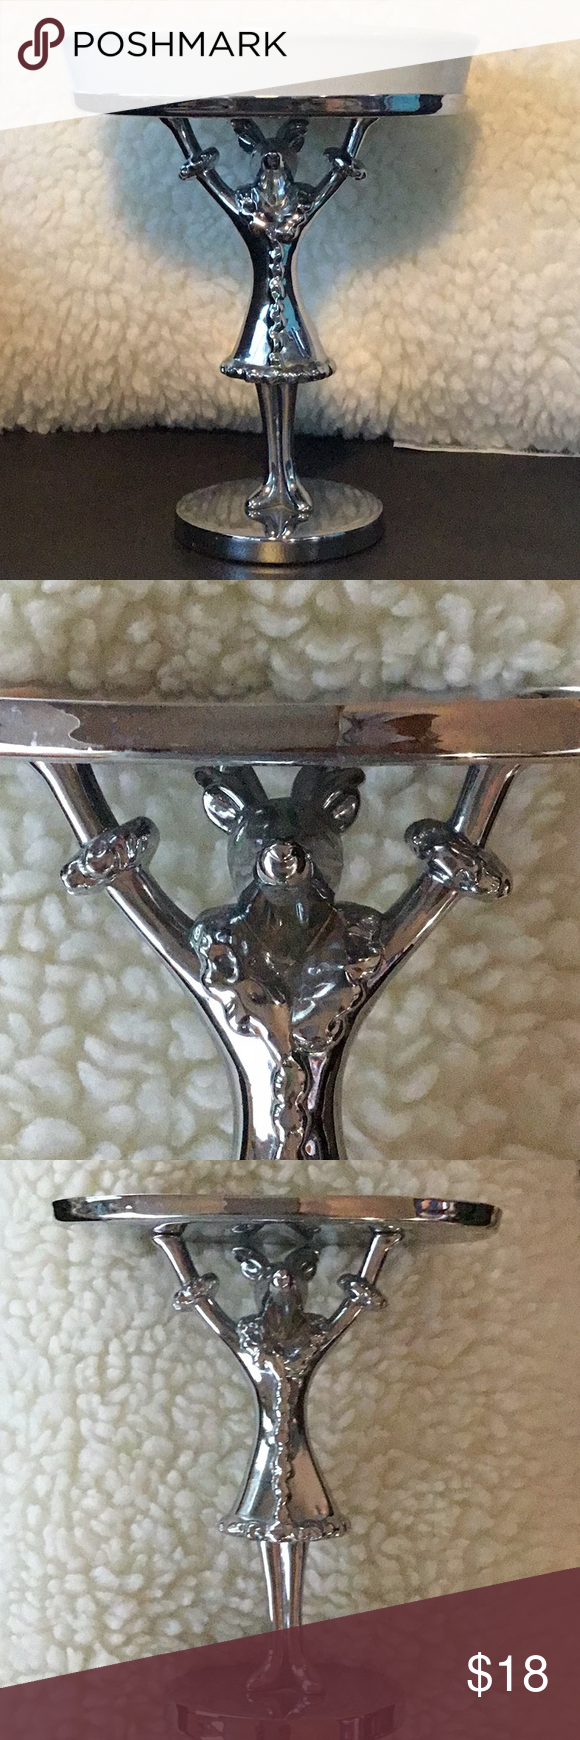 Pottery Barn Silver Reindeer Soap Dish Pottery Barn